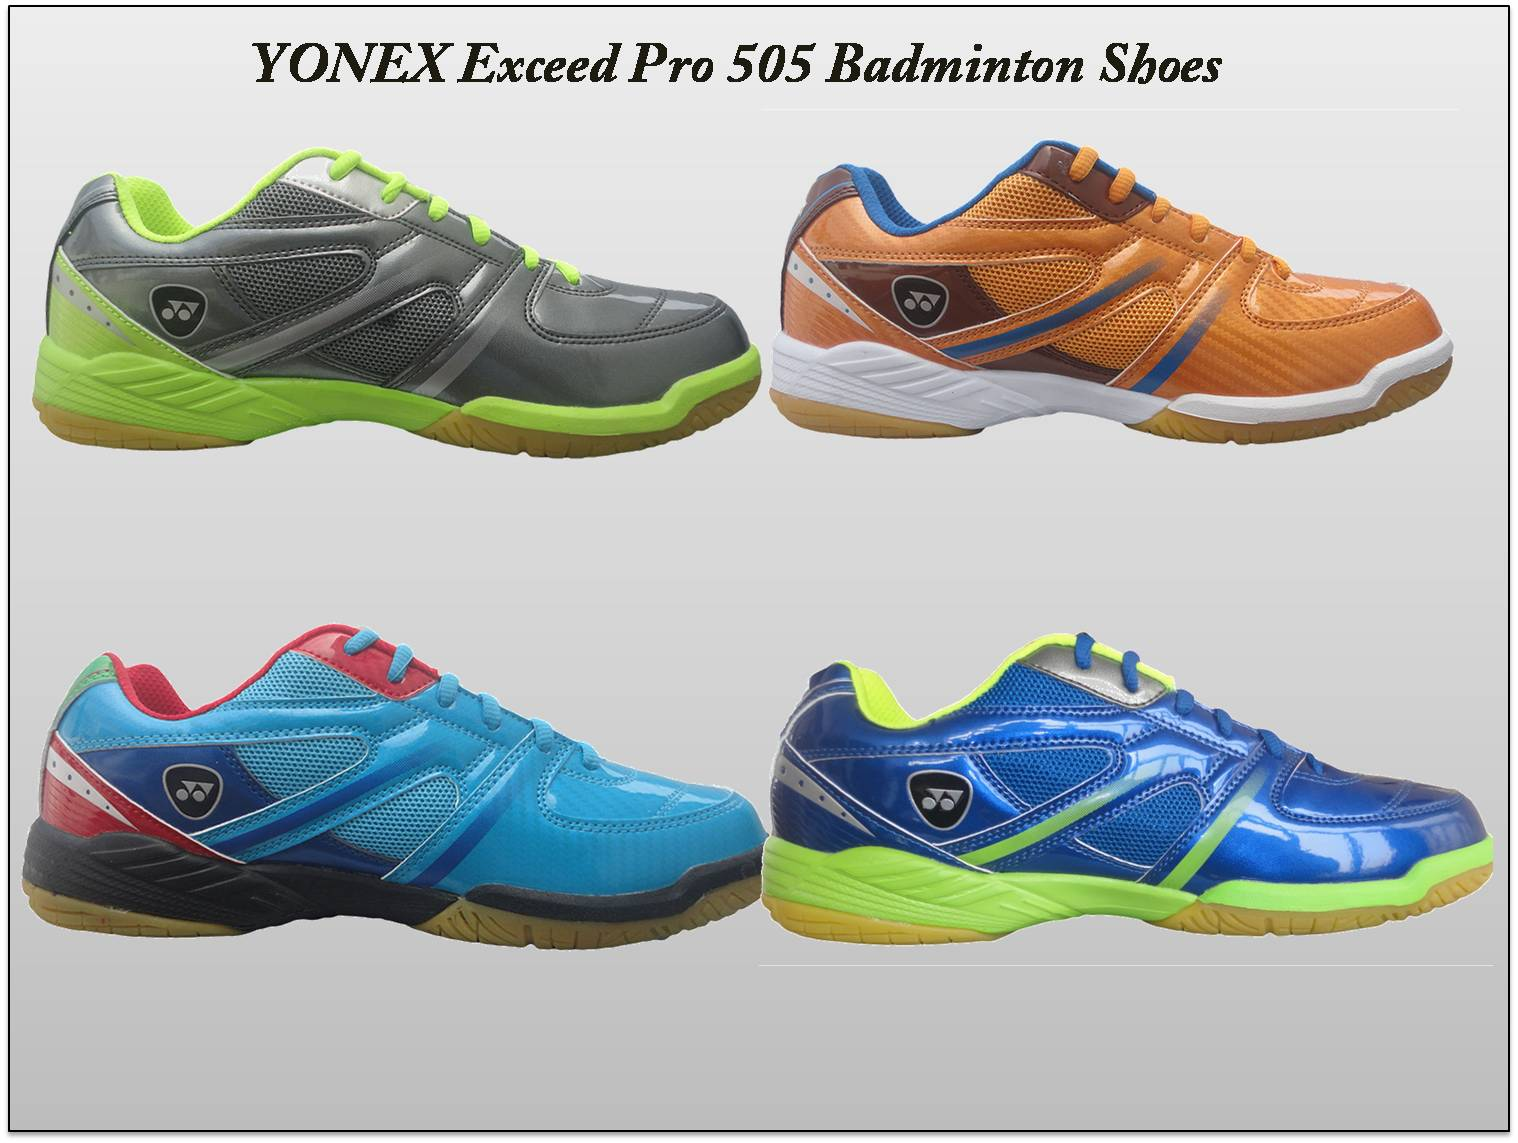 YONEX Exceed Pro 505 Badminton Shoes side view 2